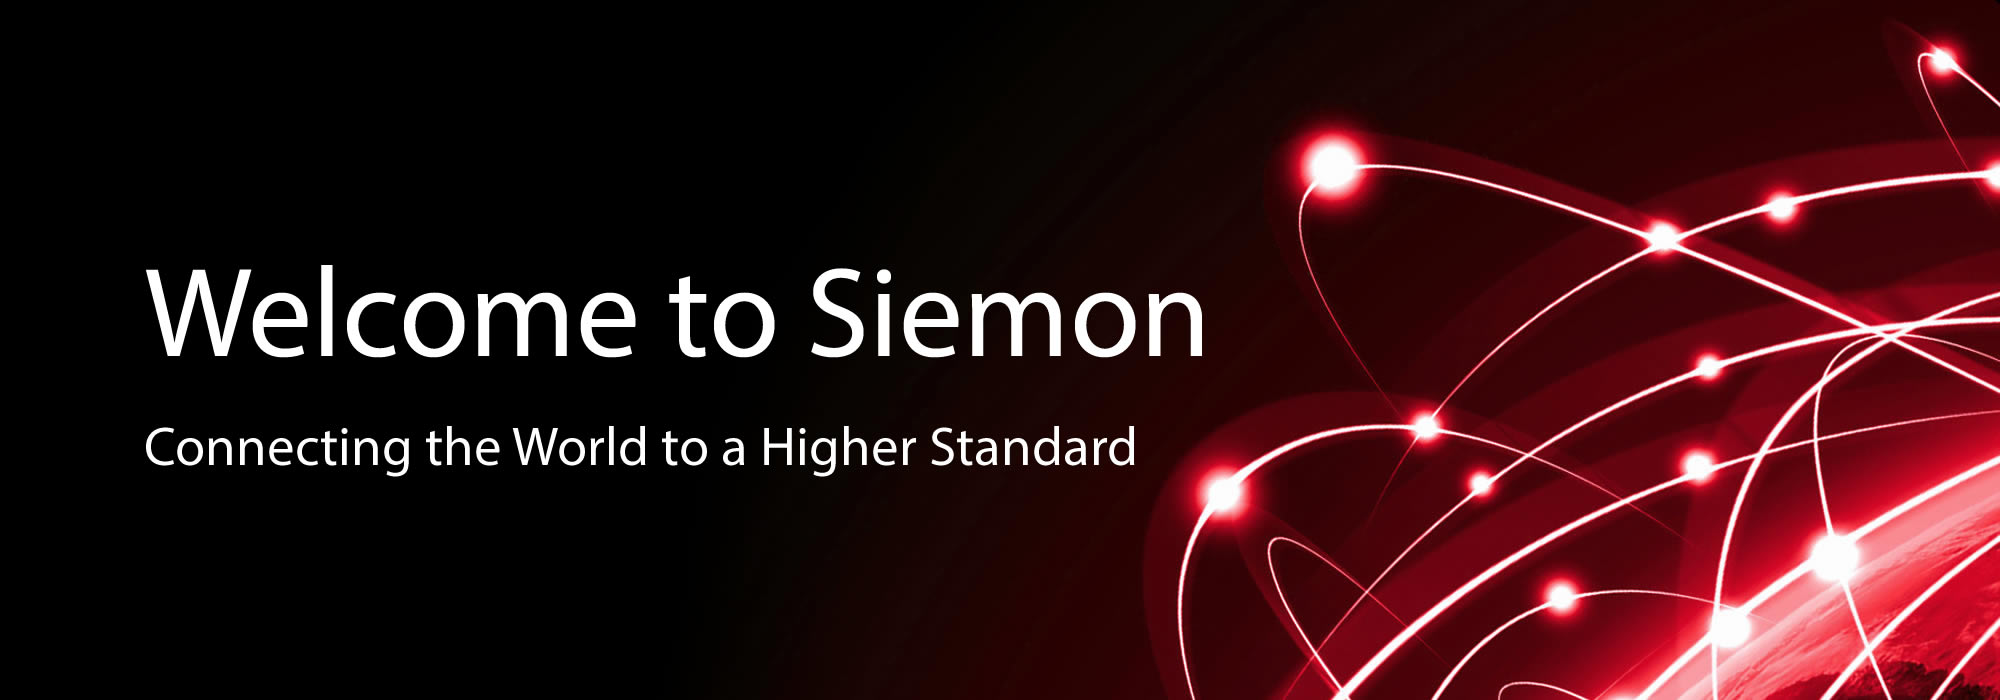 Welcome to Siemon